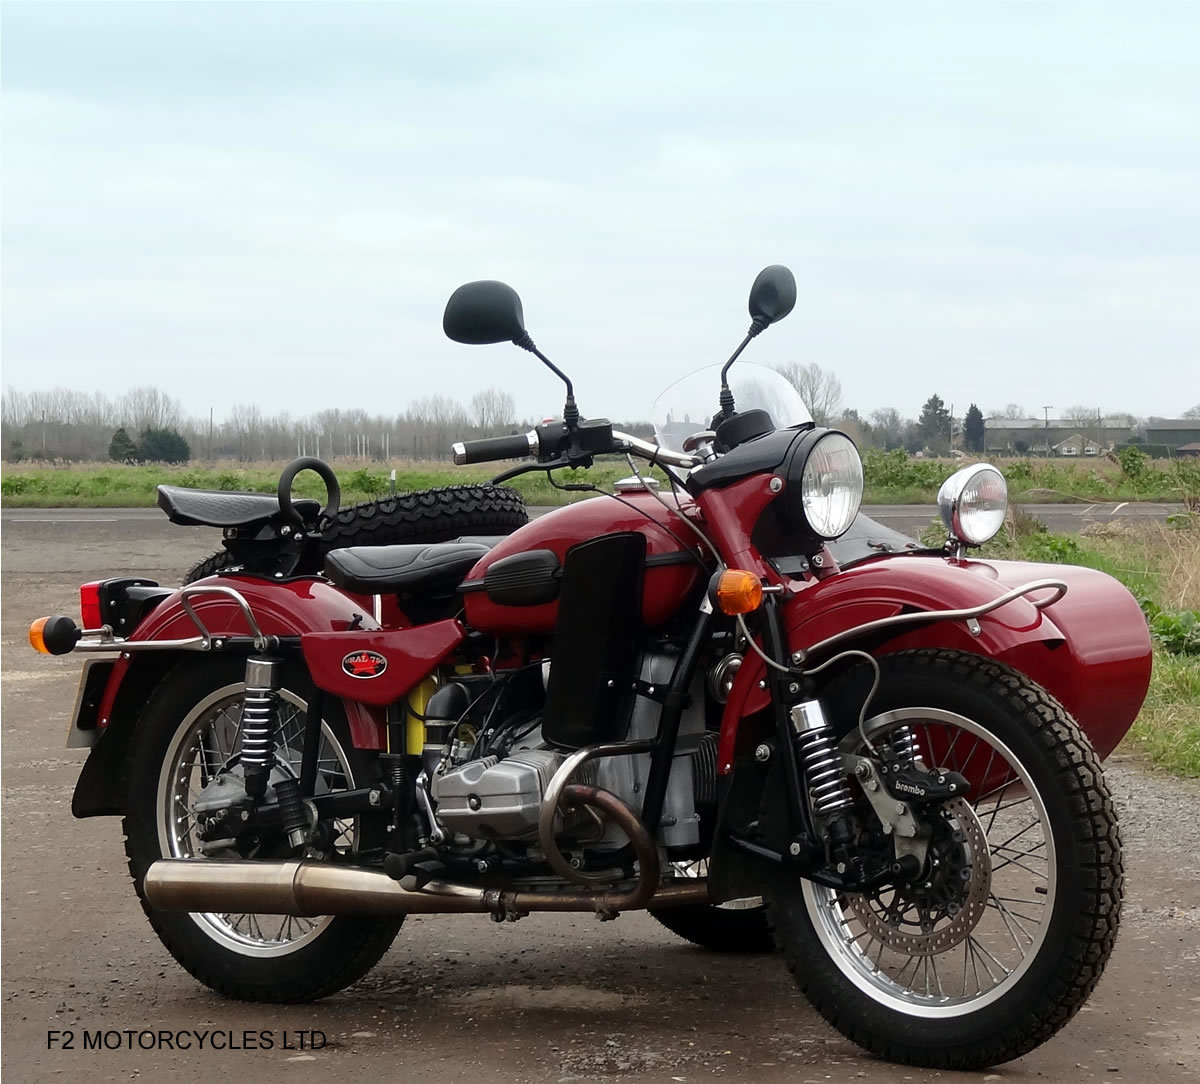 2011 Ural 750 Tourist, low mileage, UK spec, ready to ride SOLD (picture 6 of 6)